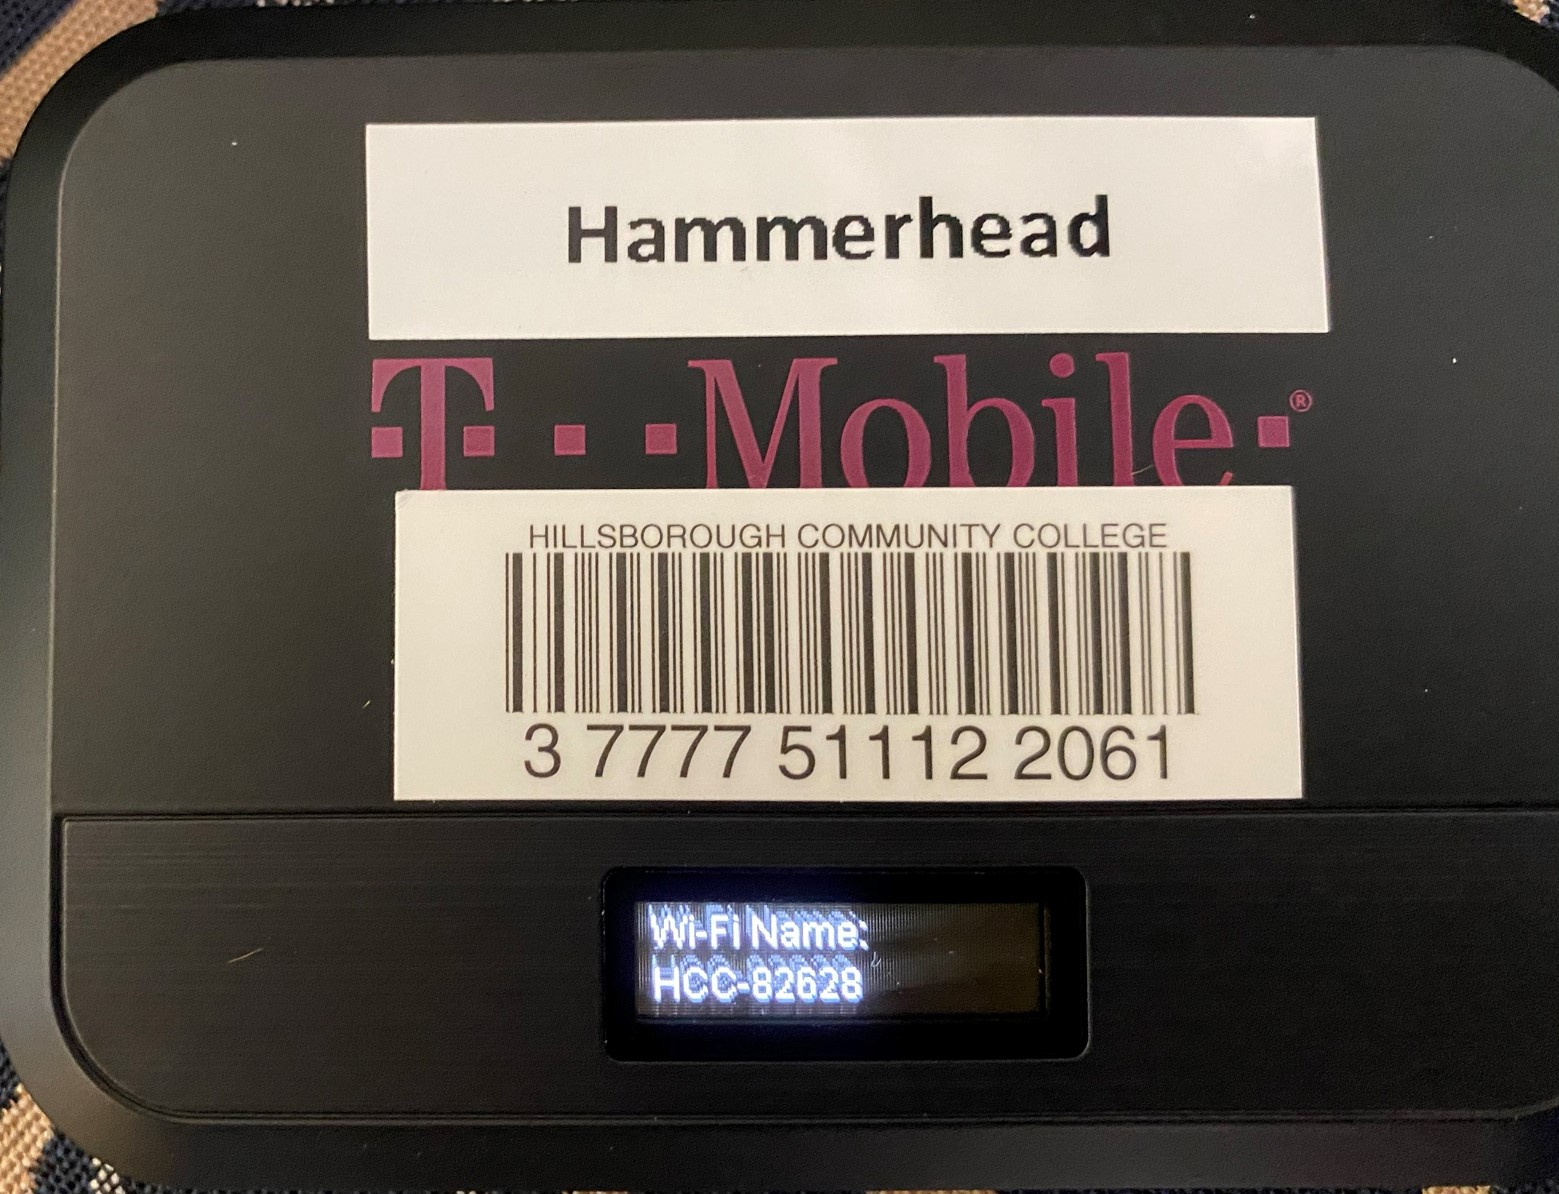 Display showing wifi network name